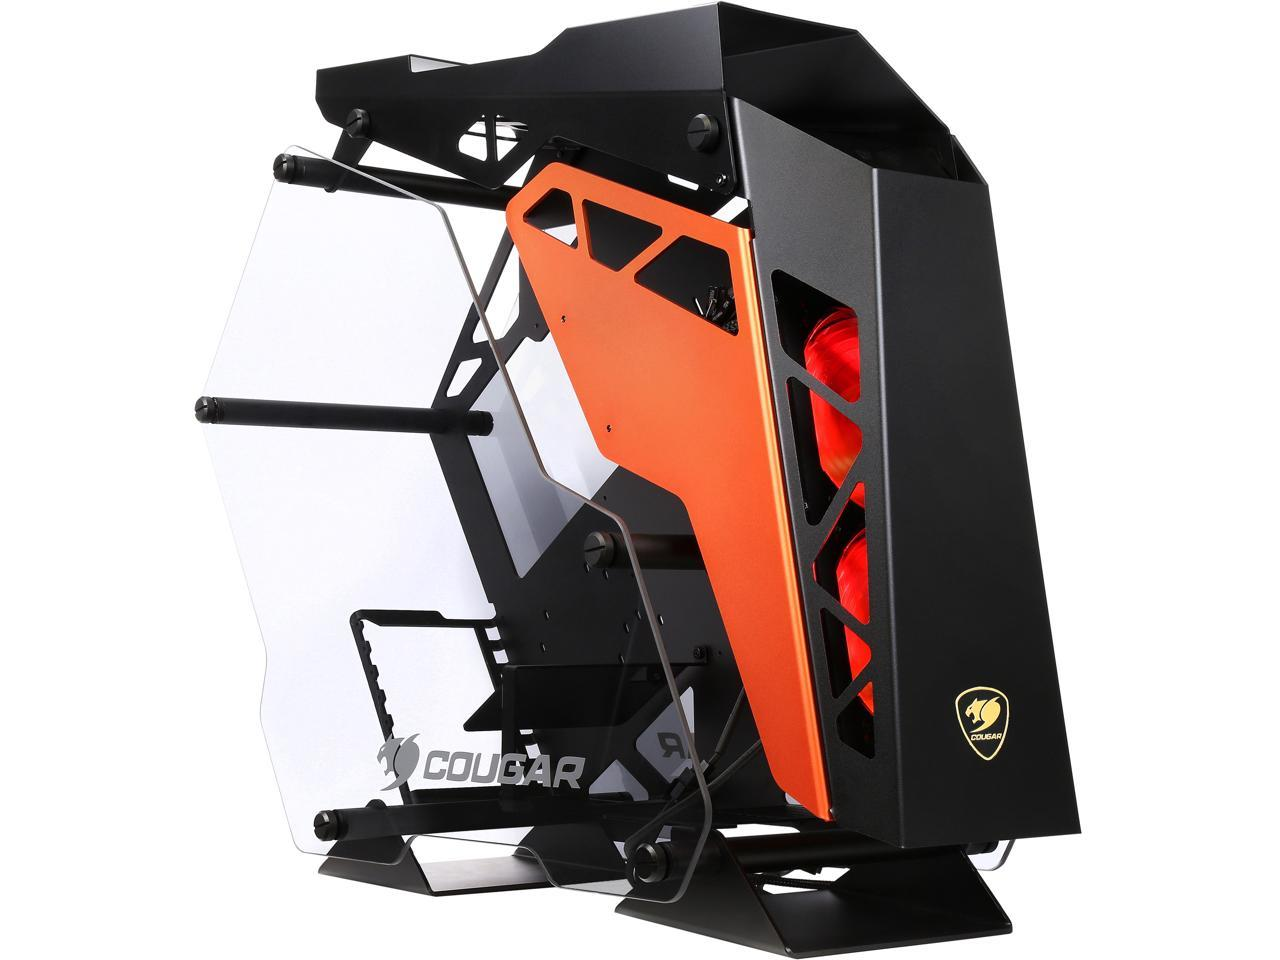 Details about COUGAR Conquer Alloy ATX Mid Tower Aluminum Frame Tempered  Glass Gaming Case